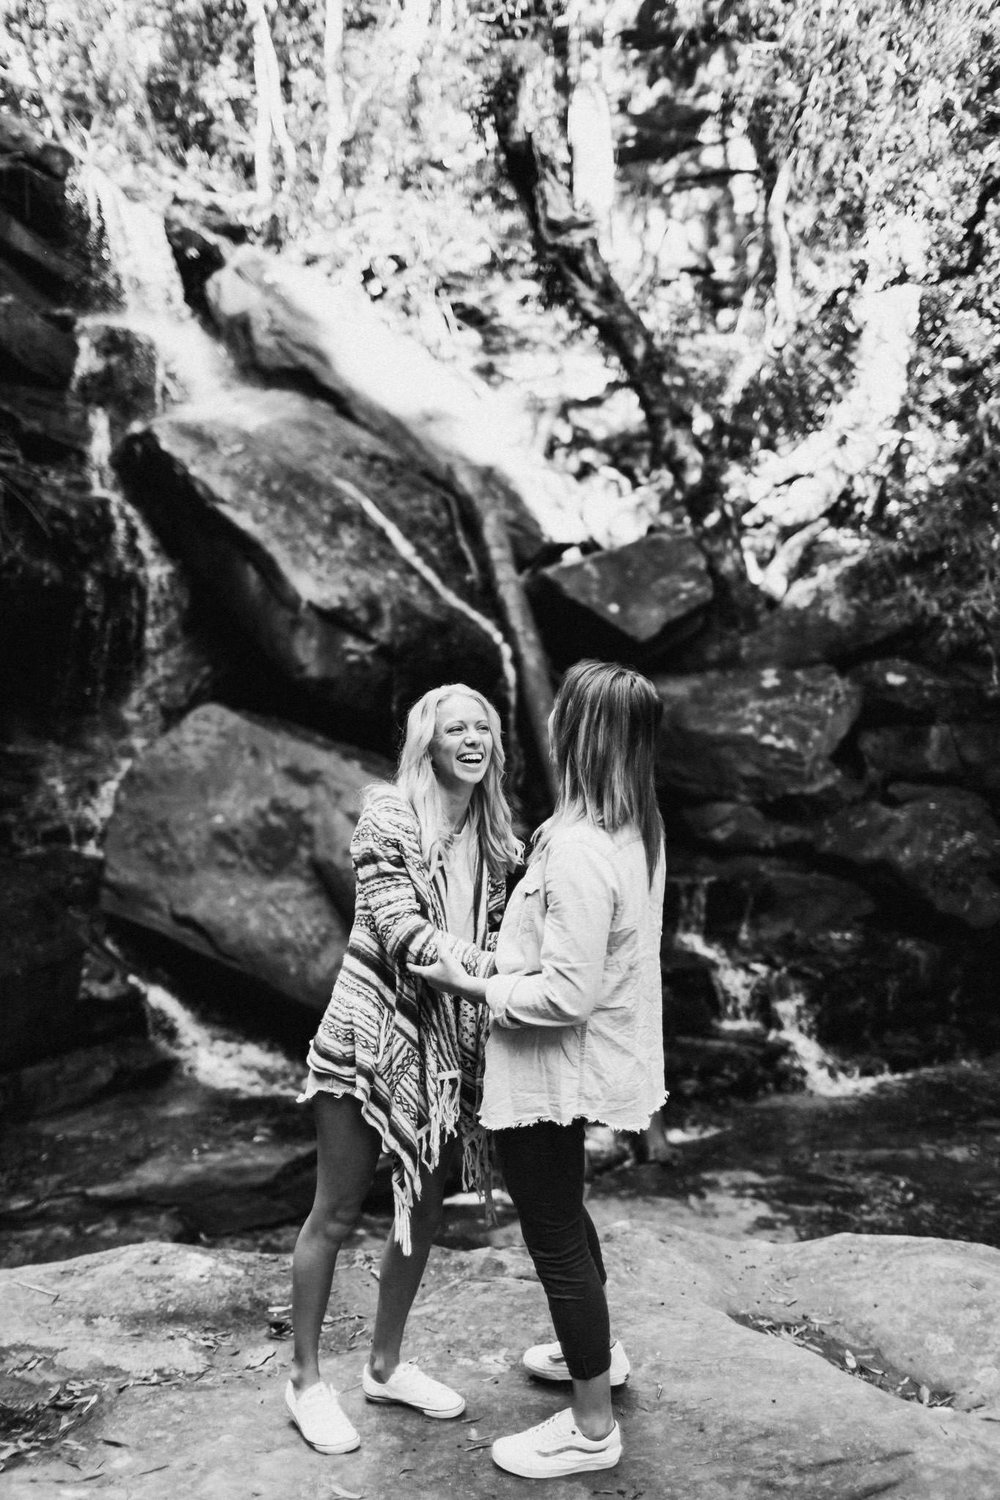 Bri_Gem_Proposal_LaurenAnnePhotography-1012.jpg